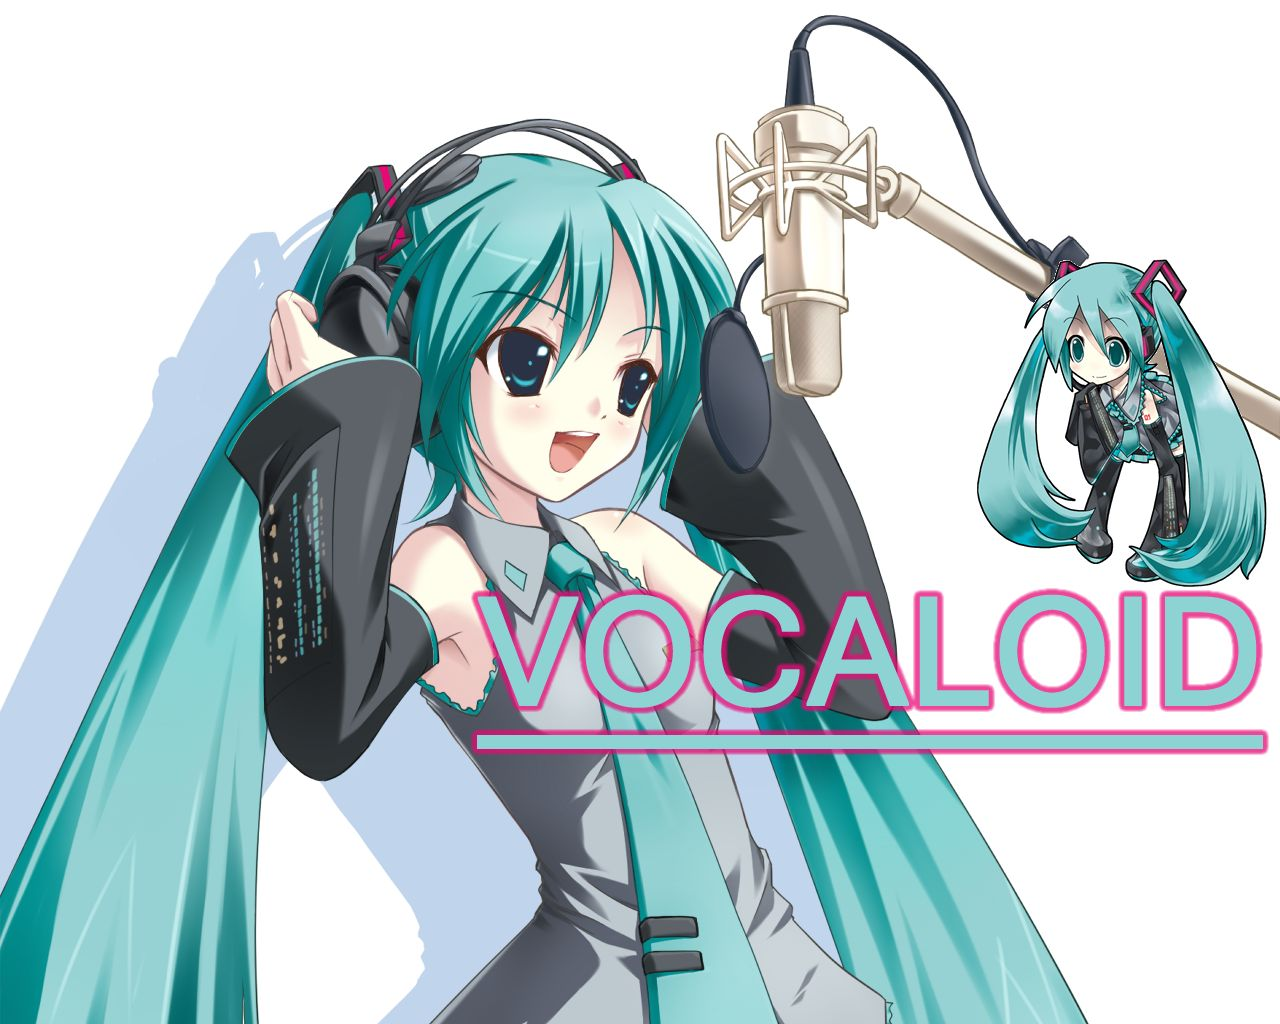 Скачать yamaha vocaloid 5 esv 5. 2. 0 win / v5. 0. 3 mac плагин.